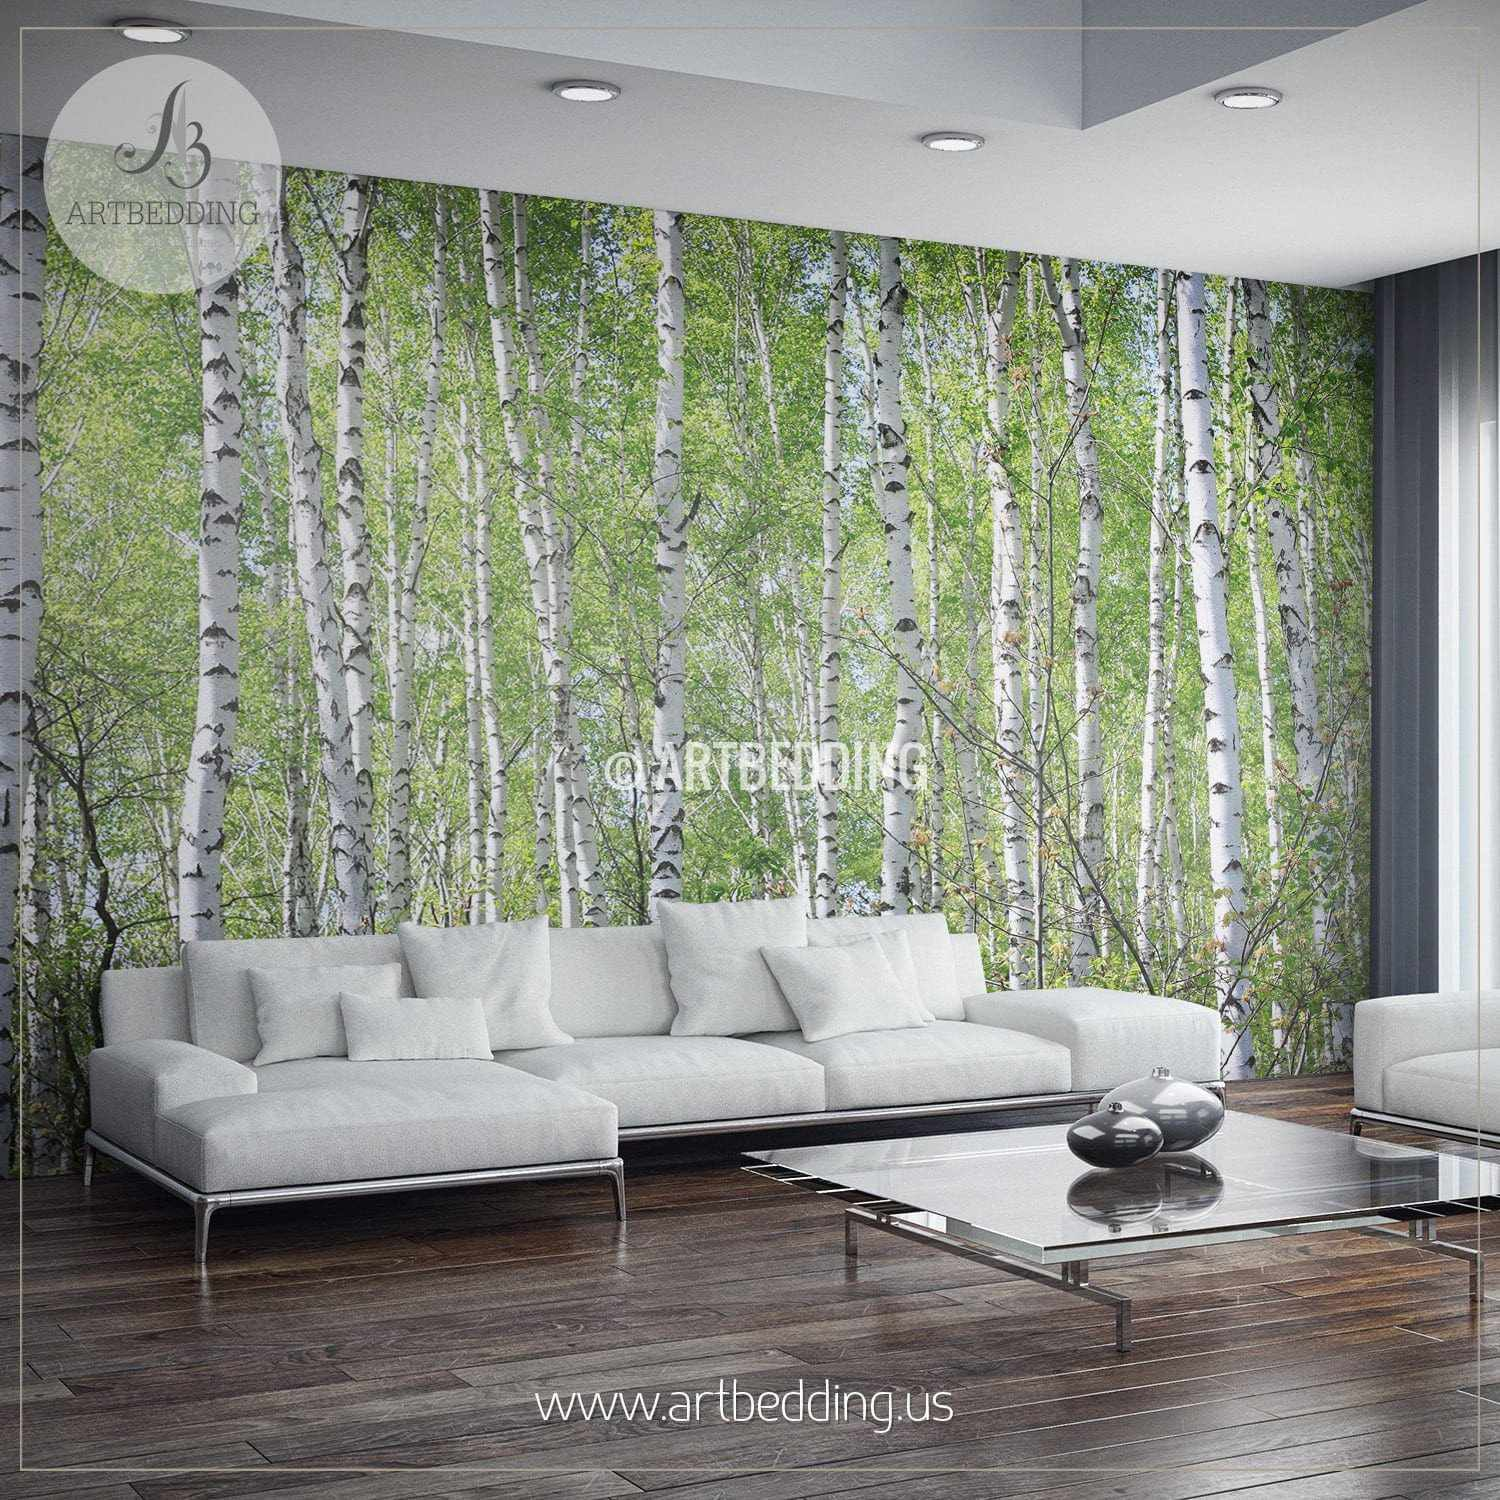 Lovely ... Birches In Forest Wall Mural, Photo Mural Self Adhesive Peel U0026 Stick, Wall  Mural ... Part 23